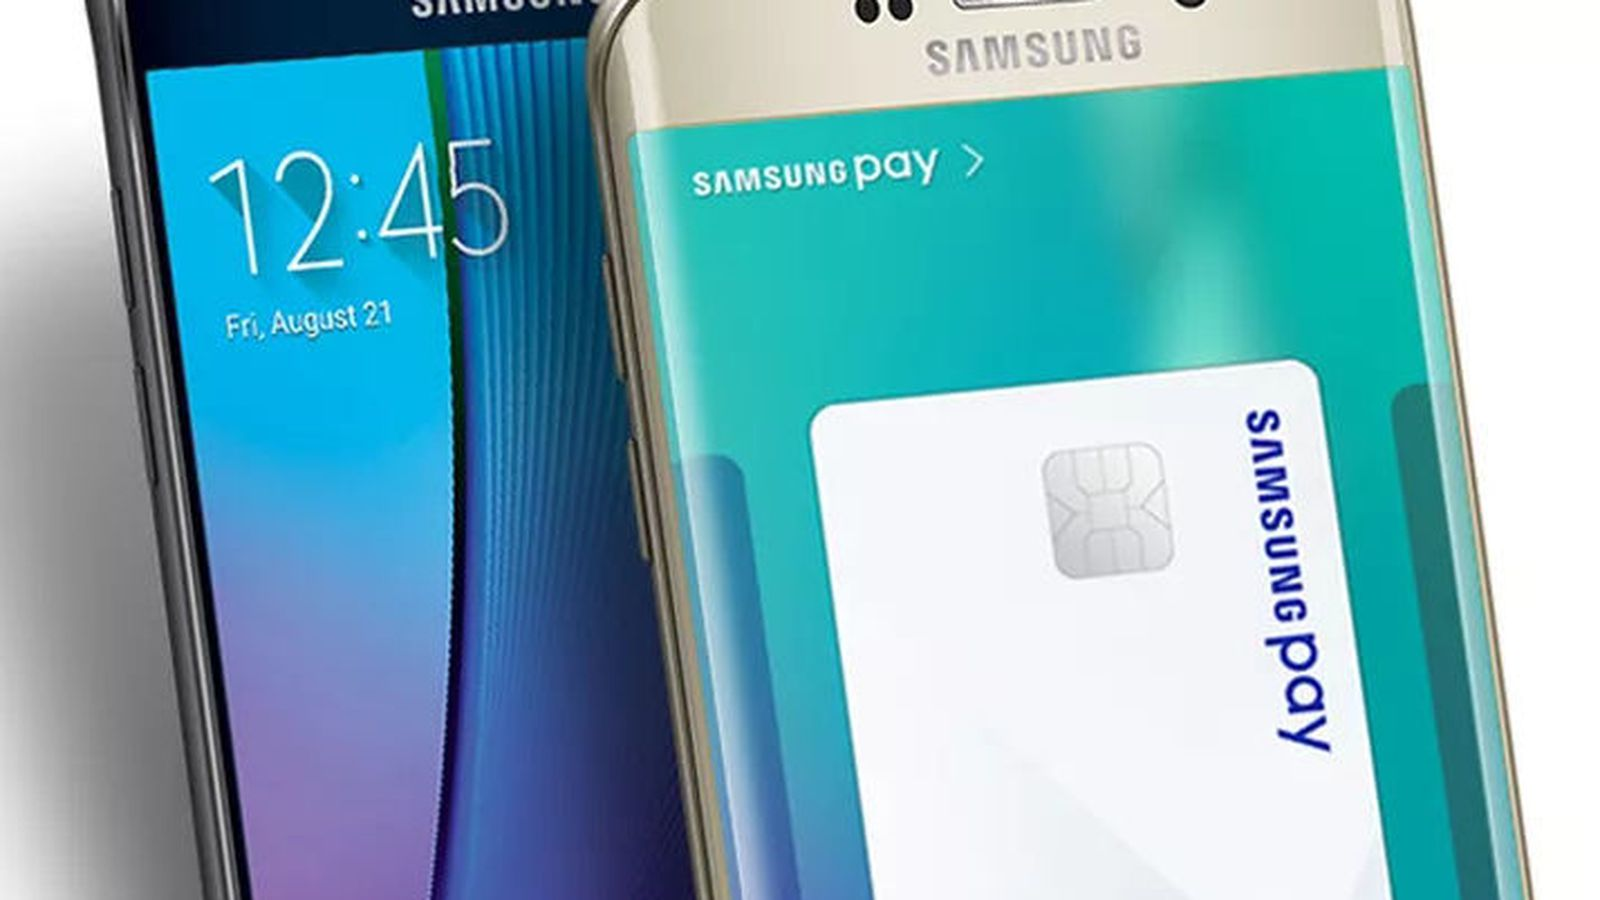 Samsung Pay Launches in the United States